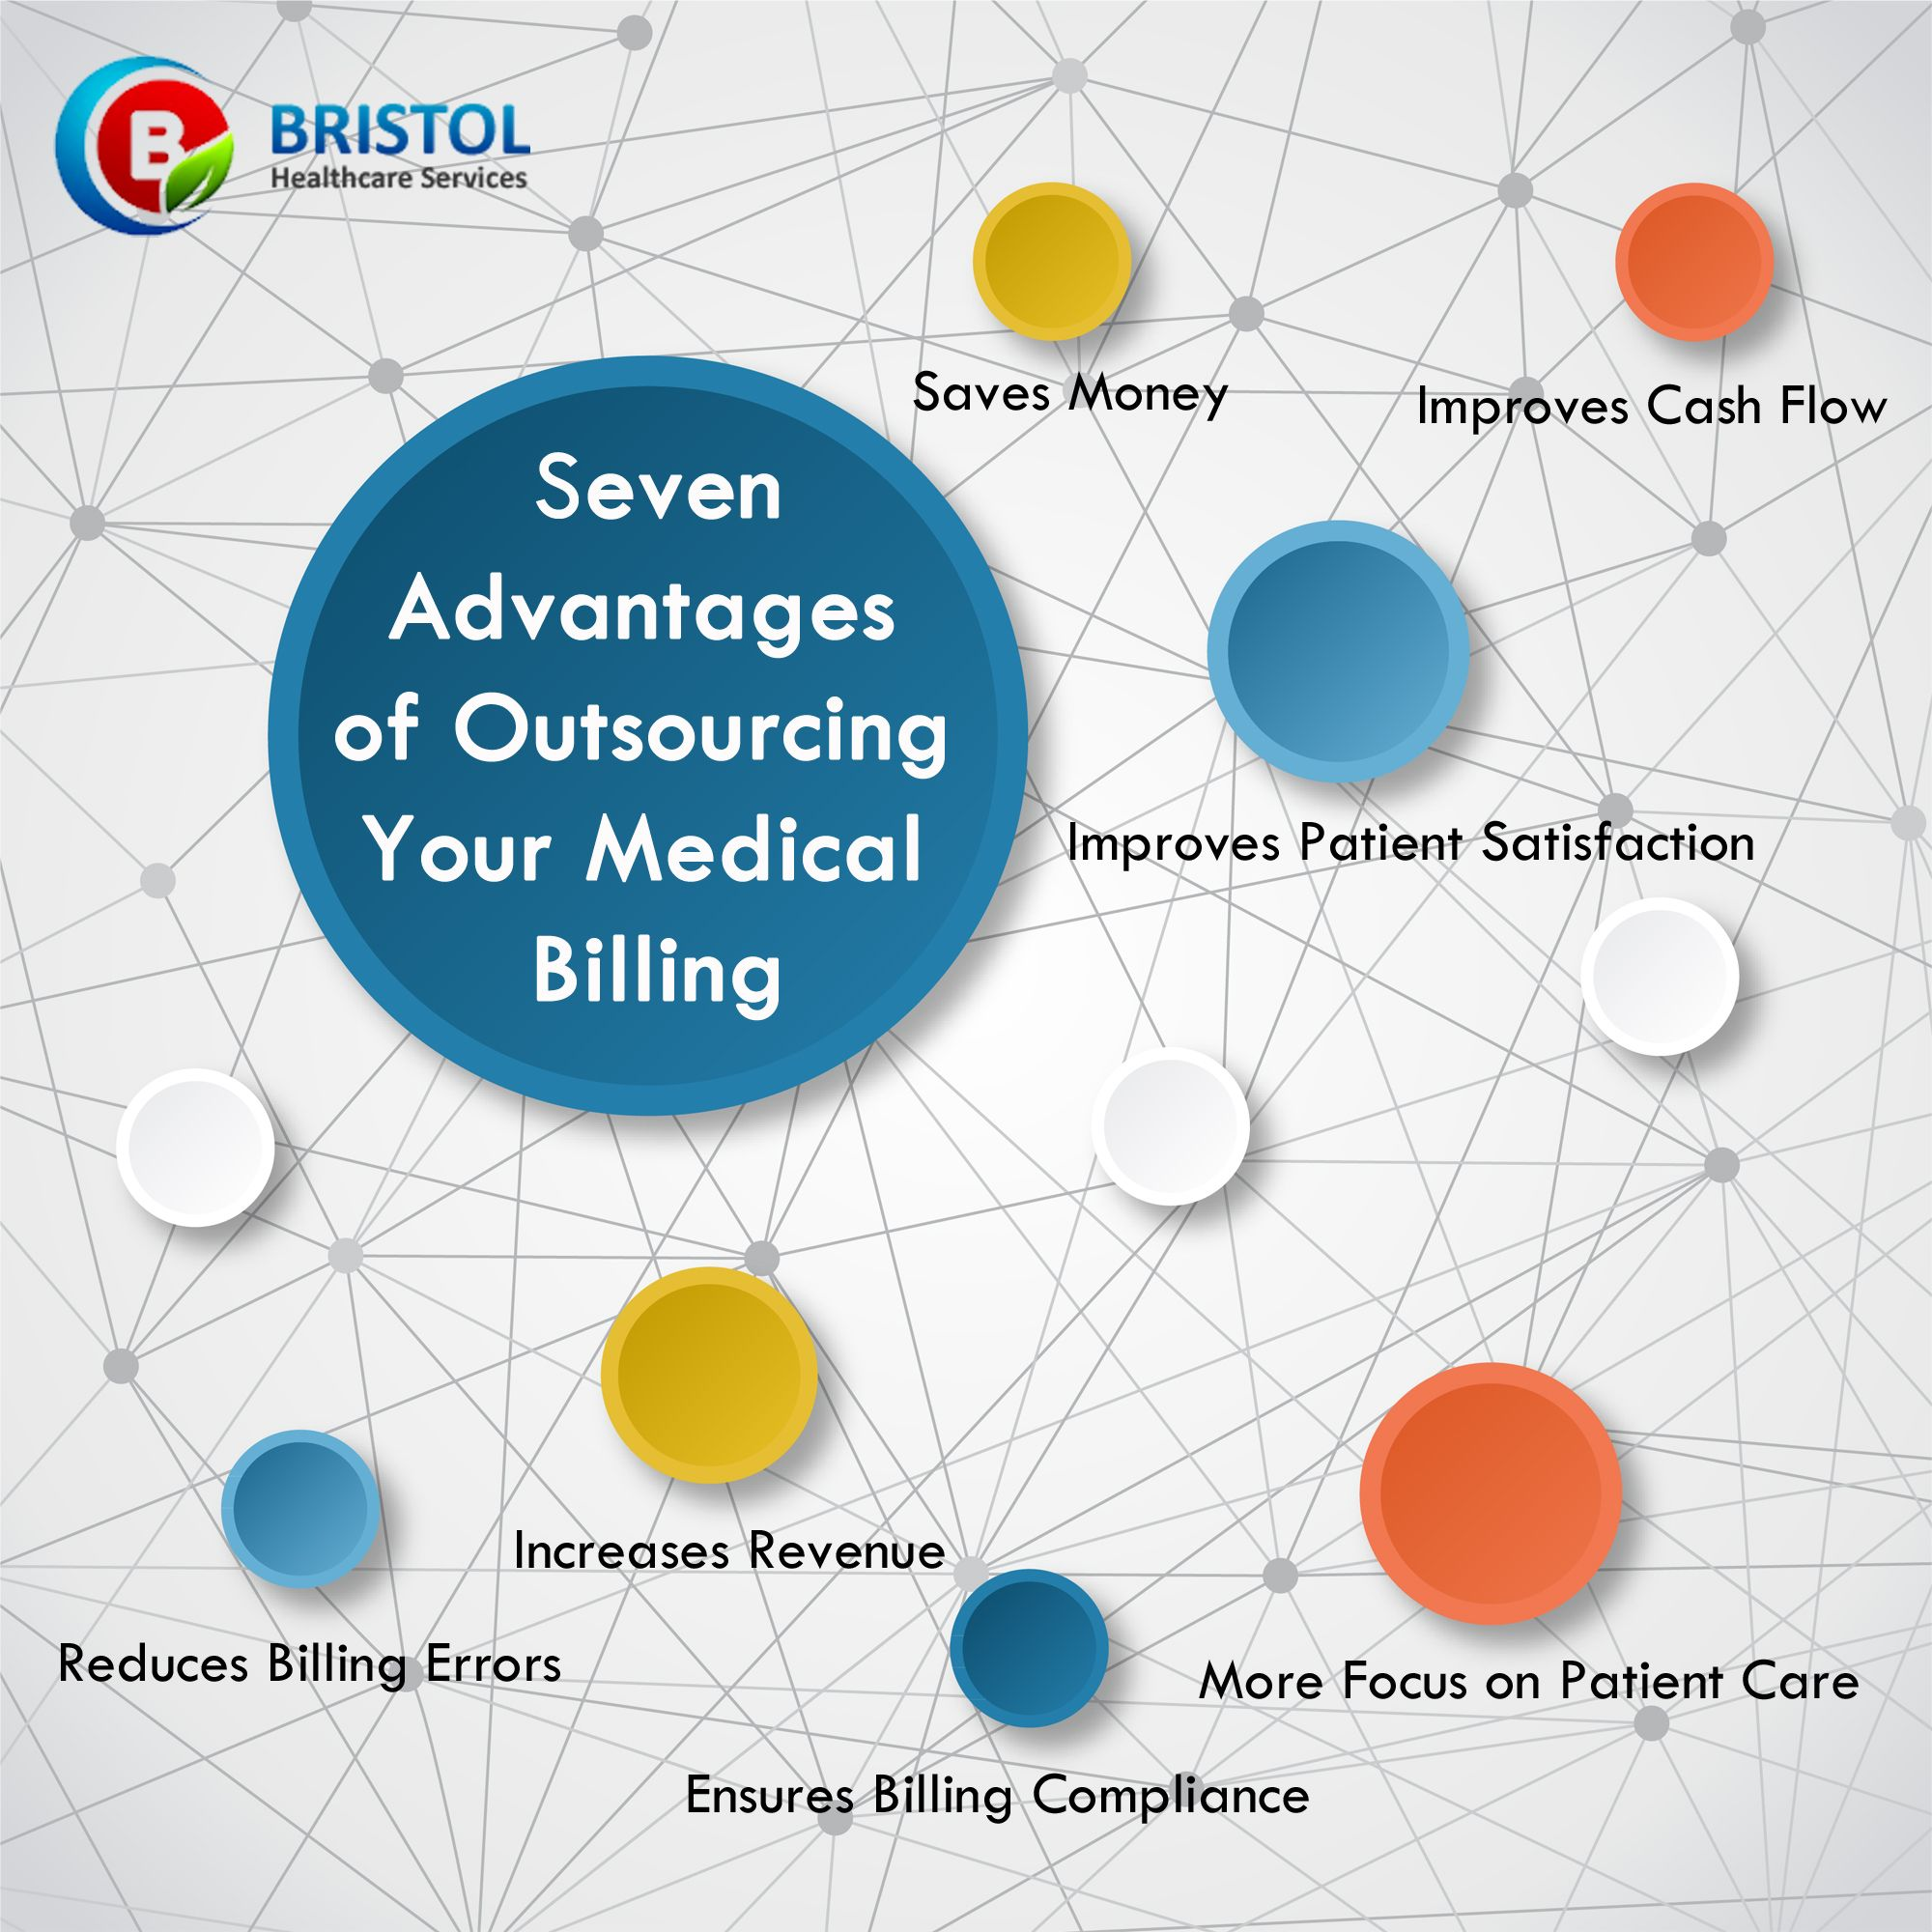 hight resolution of bristol healthcare services is a premier medical billing medical coding and revenue cycle management company we are a national service provider with